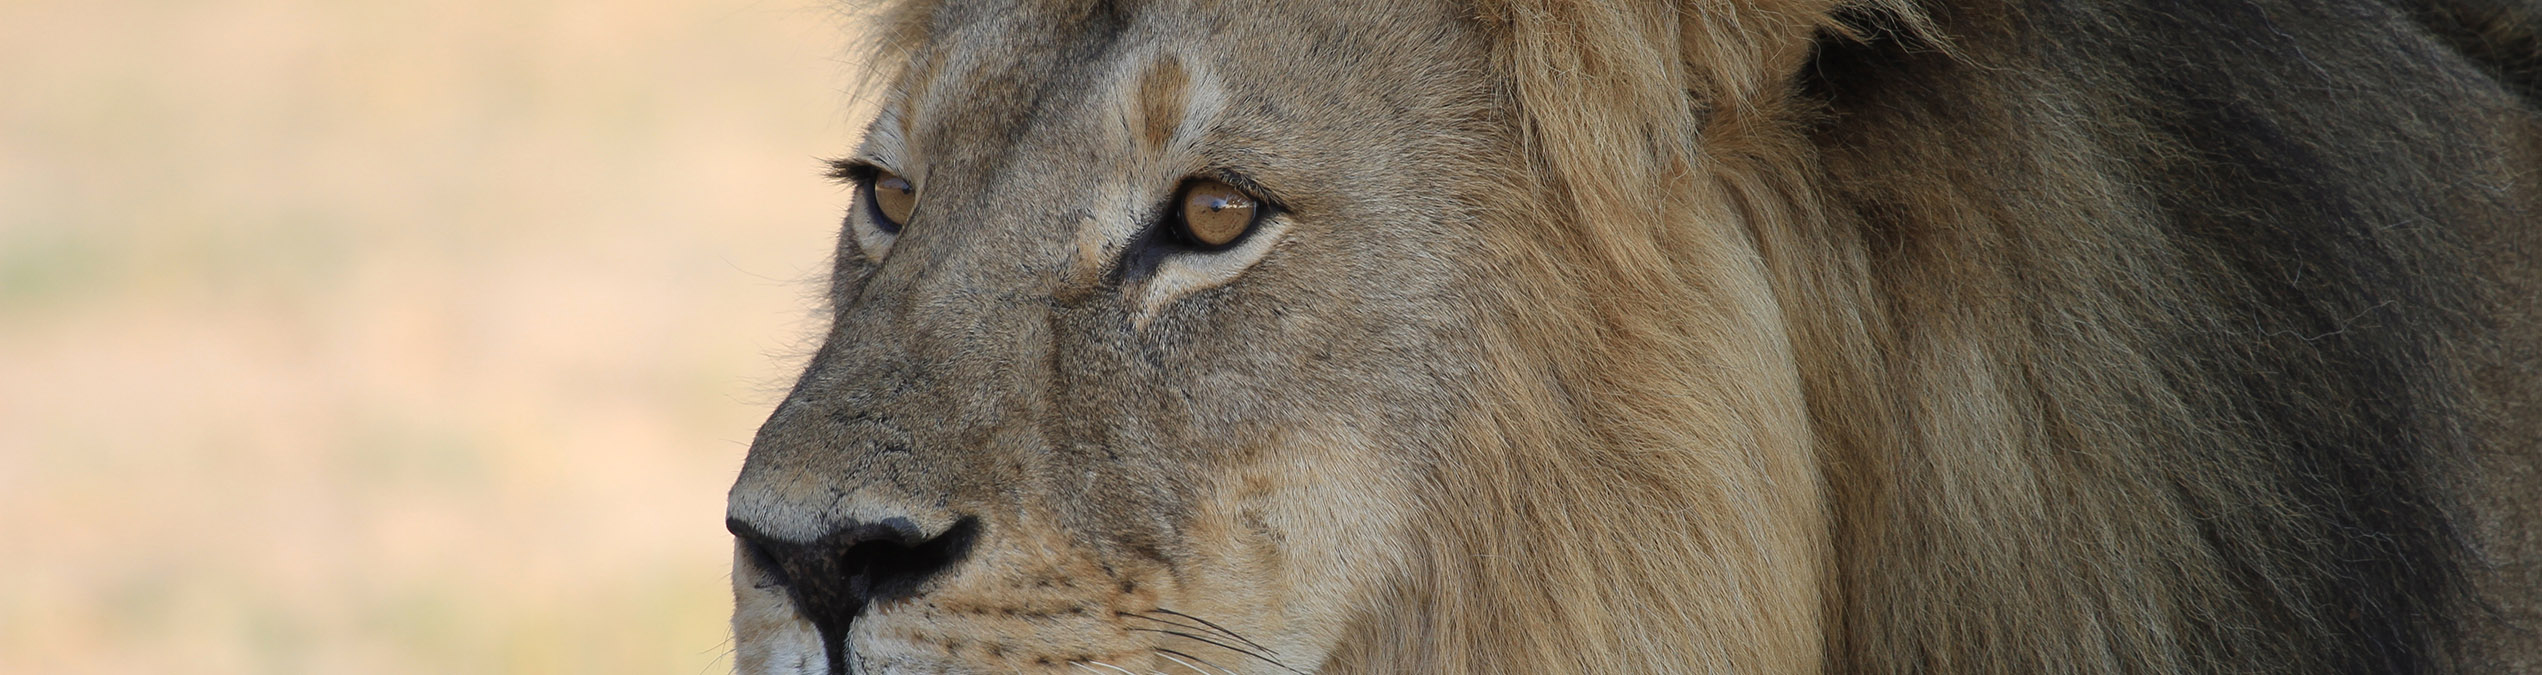 Safari Club - Zimbabwe_Hwange_National_Park_Cecil_the_male_lion